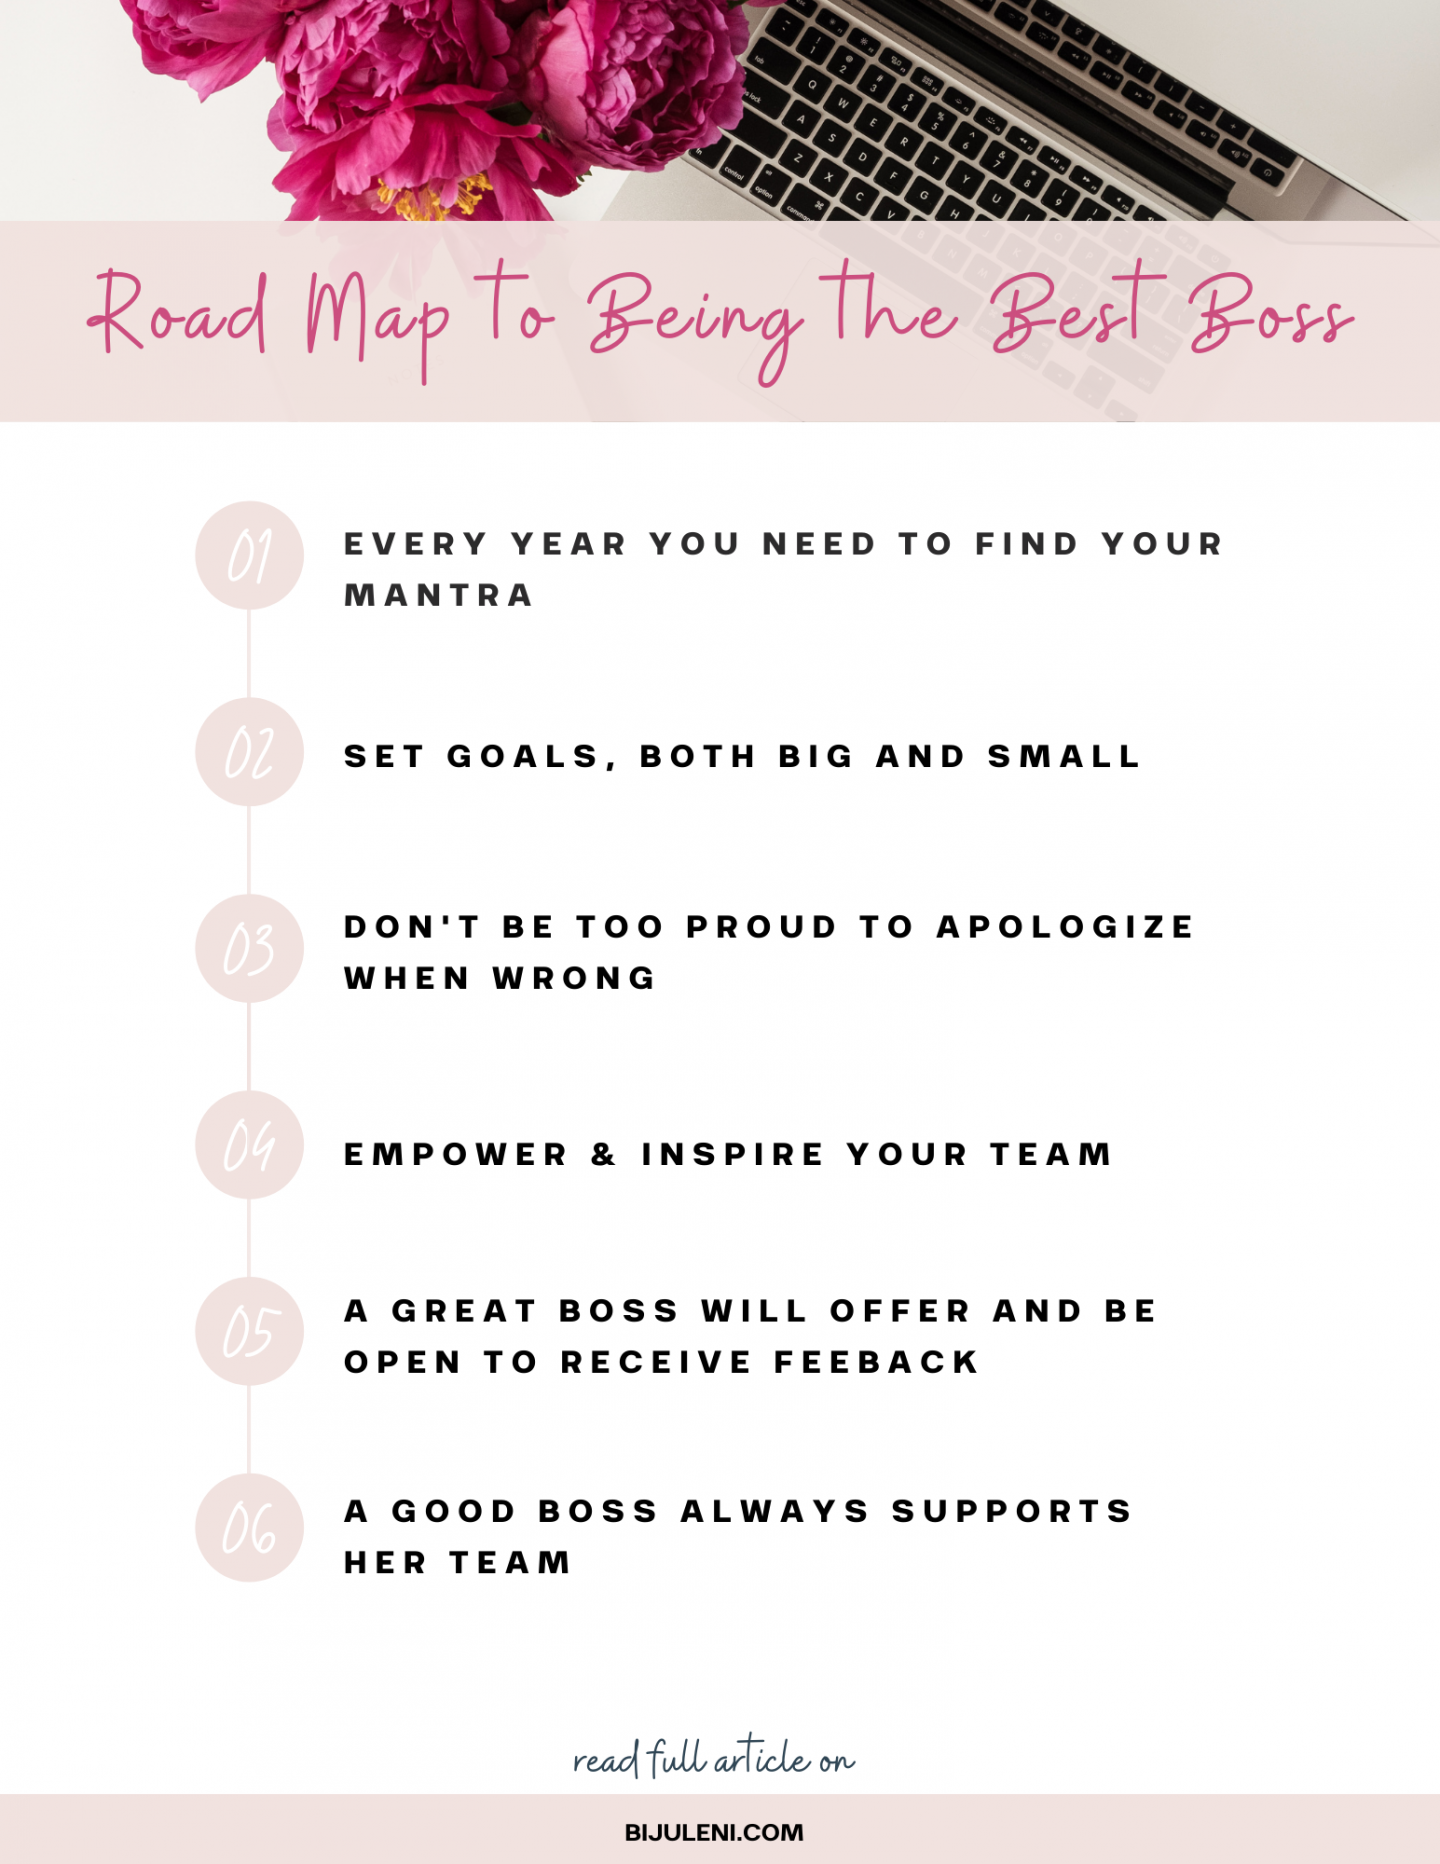 Roadmap of the qualities you need to be a great boss